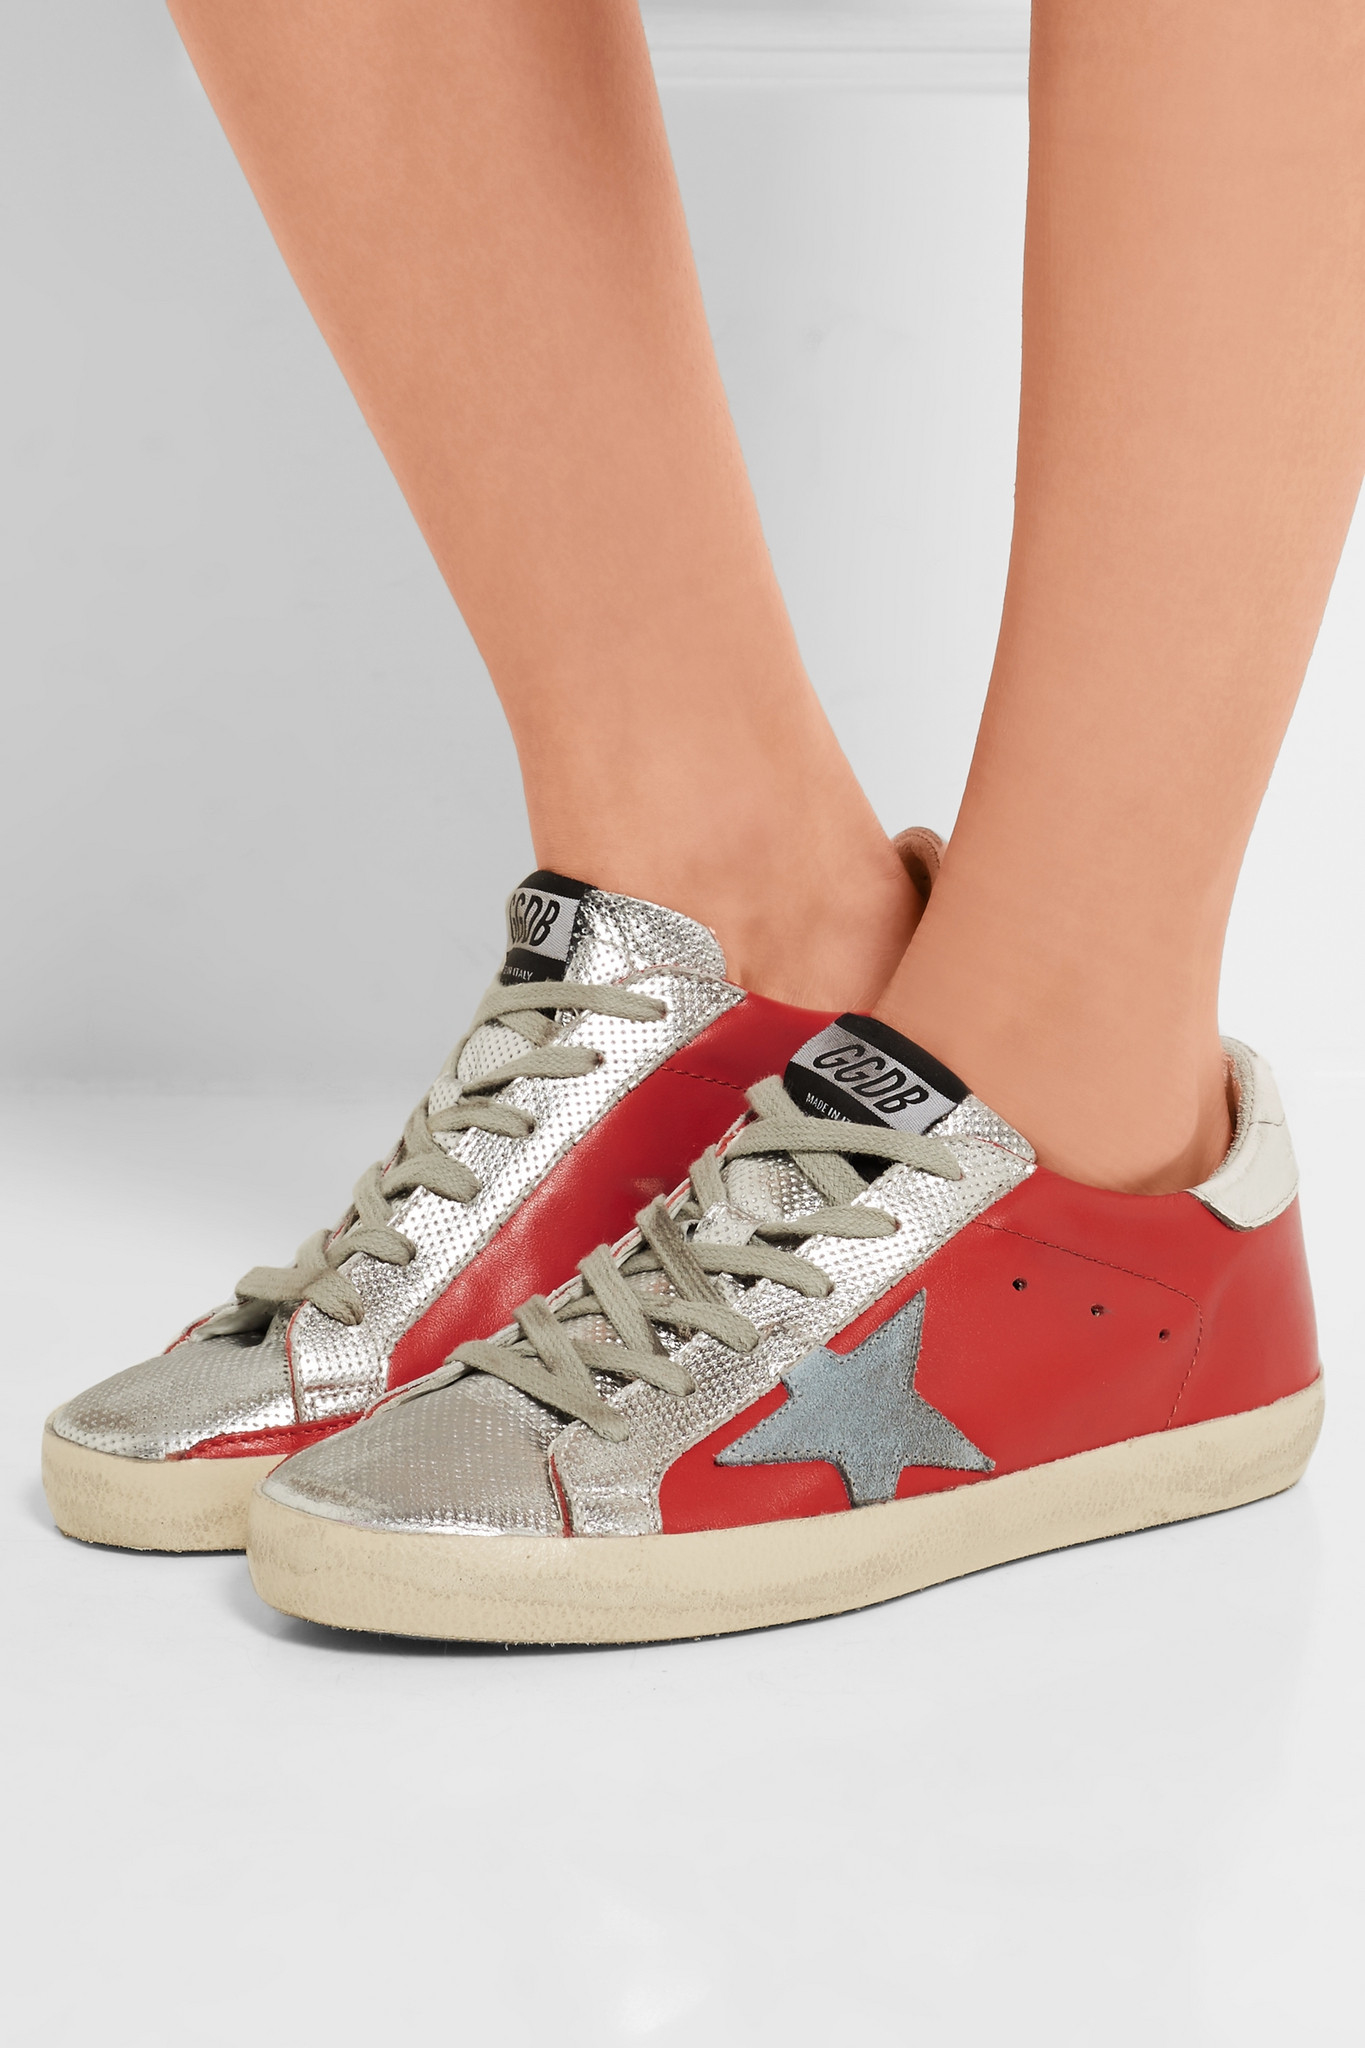 b1262a6c7f07 Golden Goose Deluxe Brand Super Star Metallic Distressed Leather ...